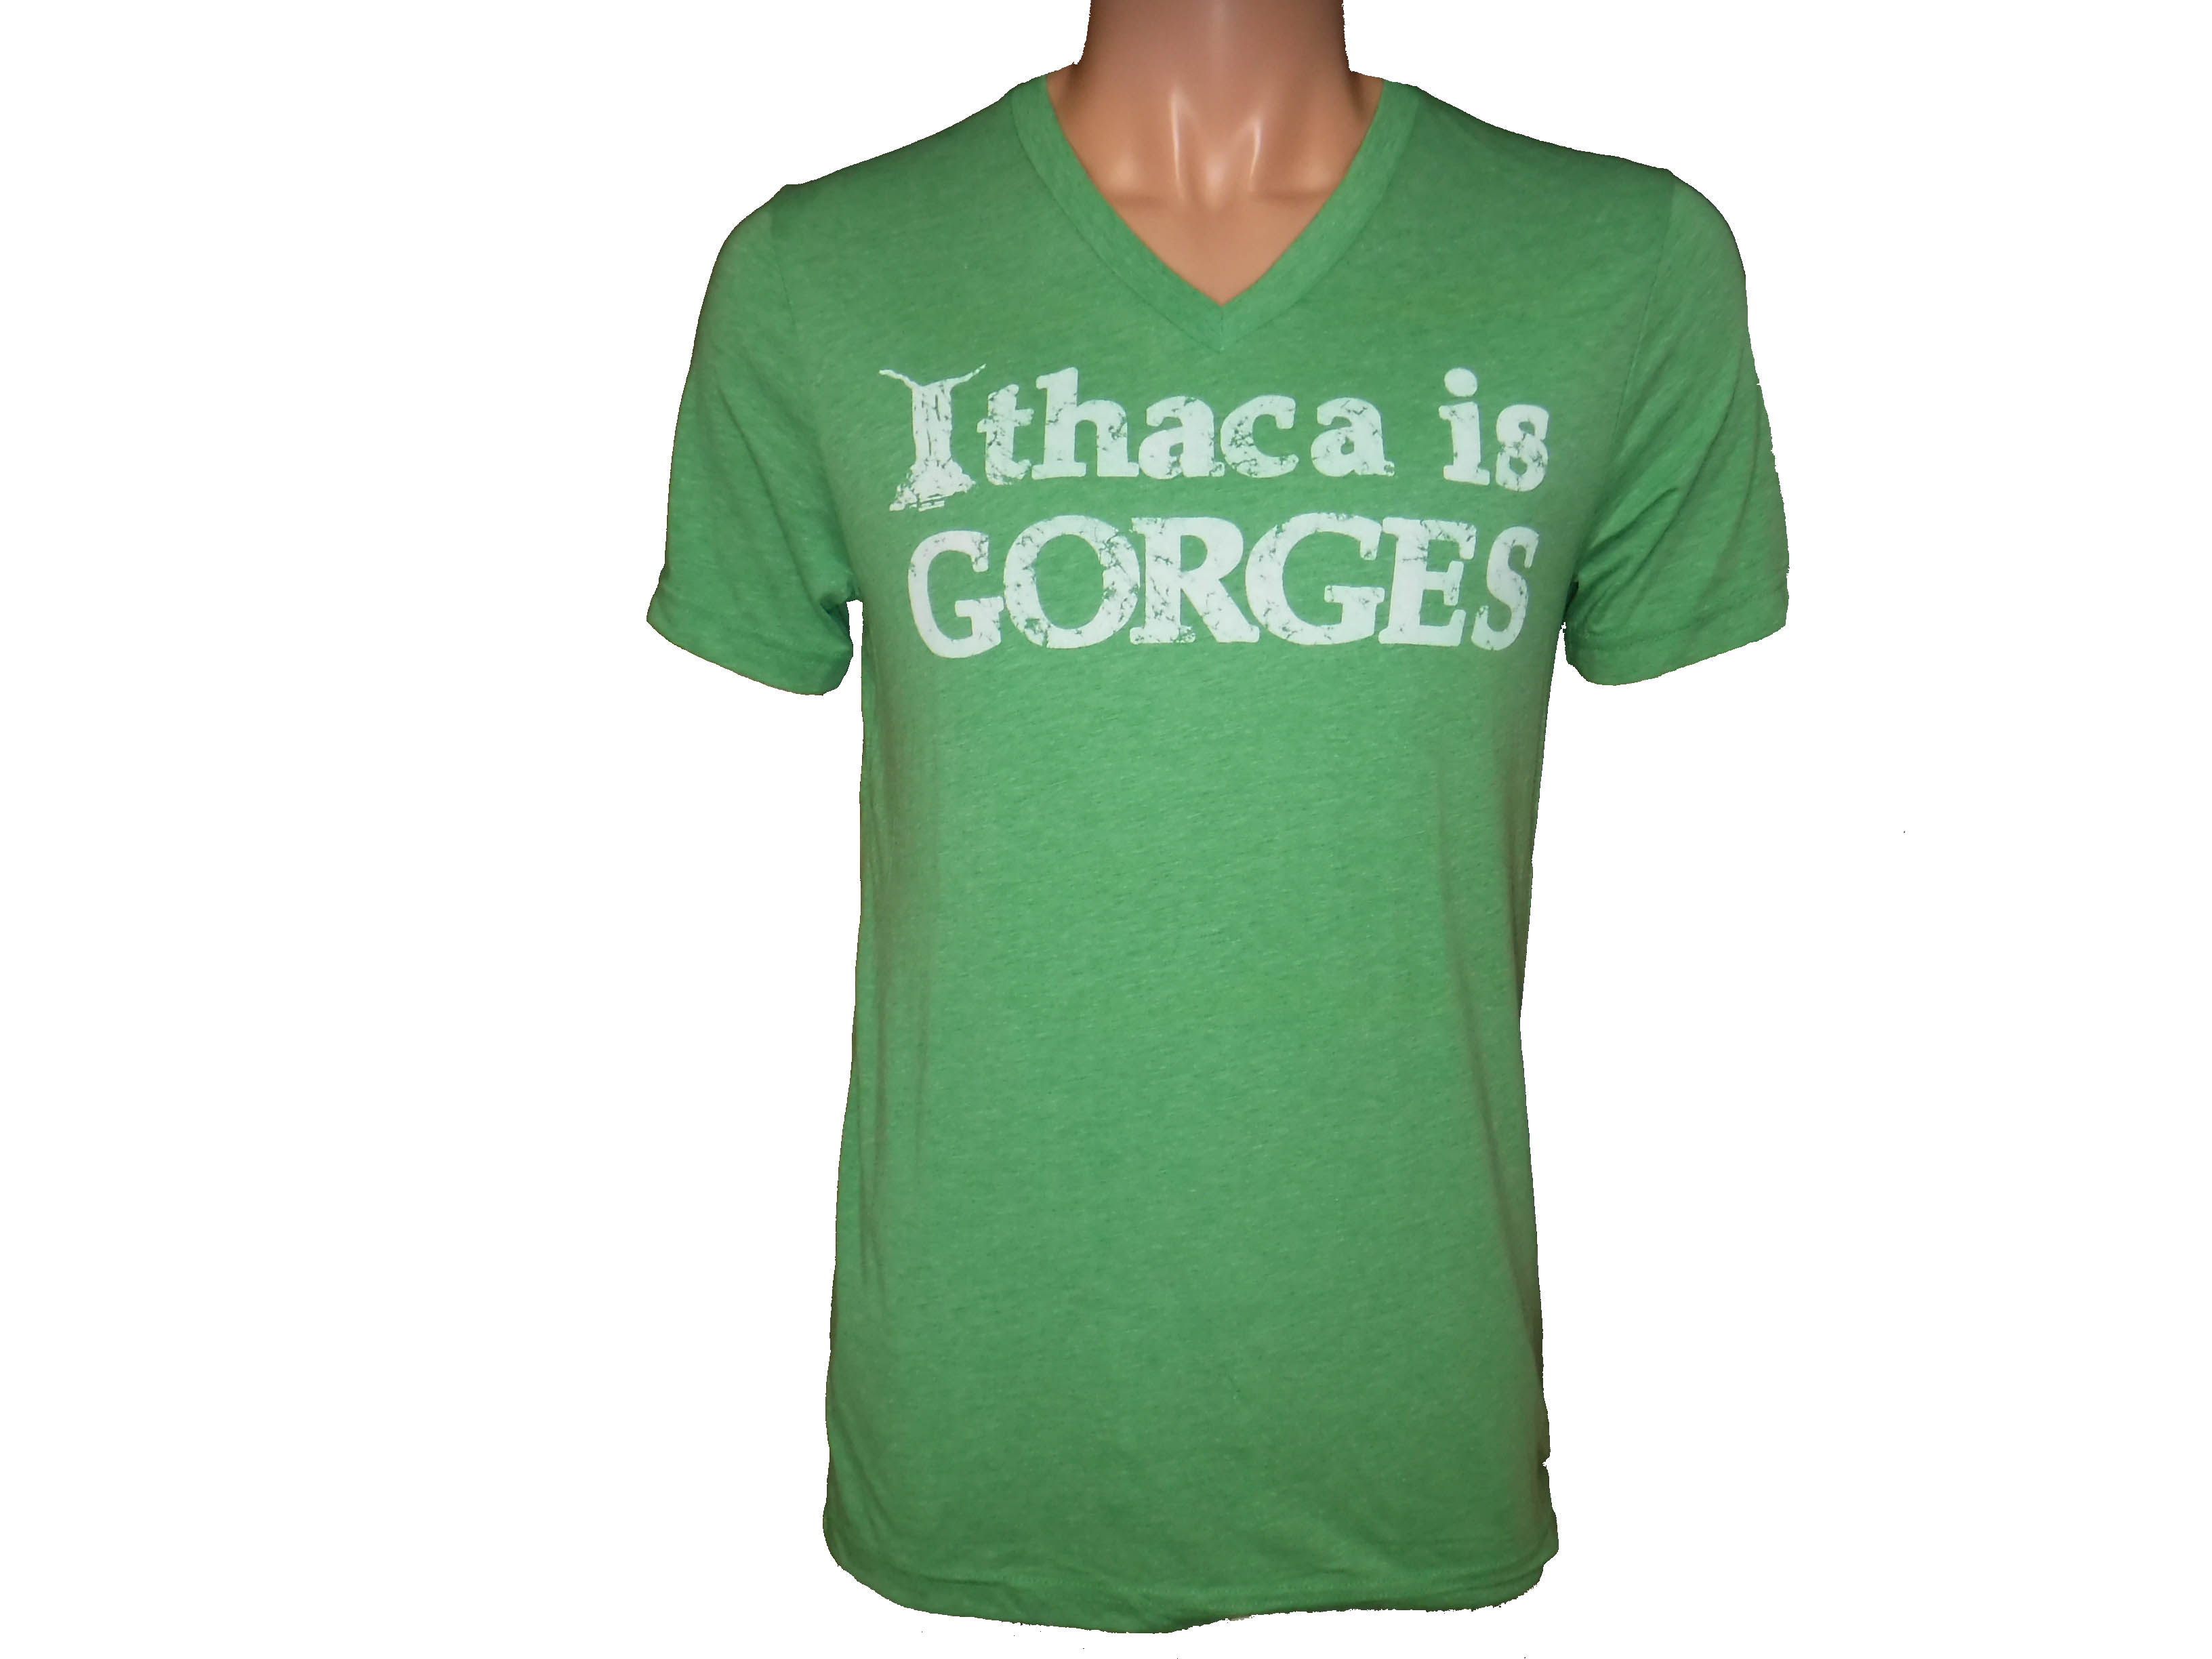 Ithaca is Gorges Tri-blend V-Neck Green